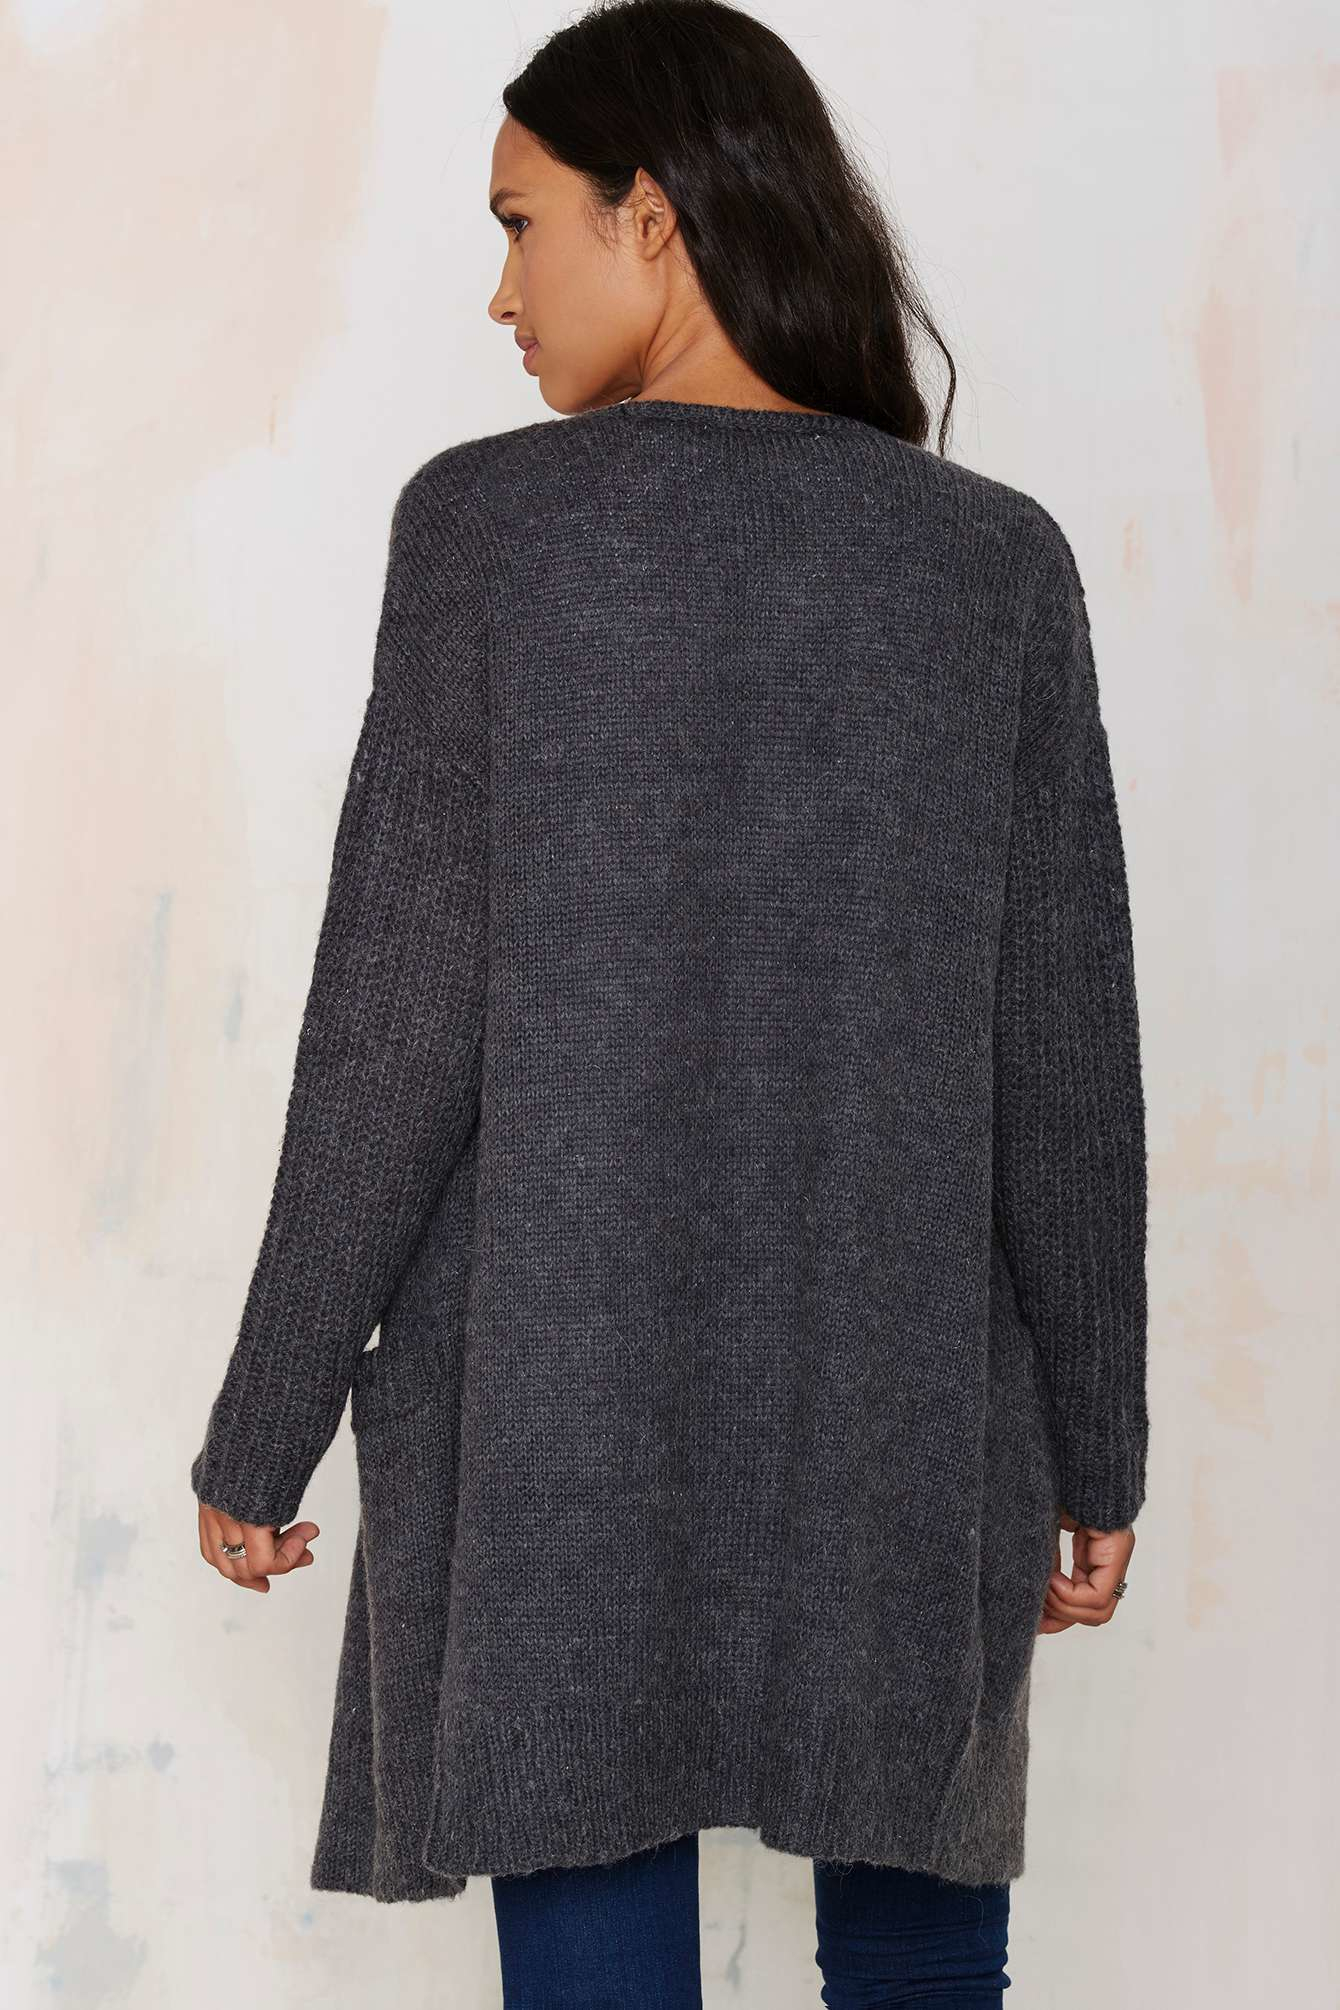 dbf4d371e23 Lyst - Joa You re Getting Warmer Knit Cardigan - Charcoal in Gray